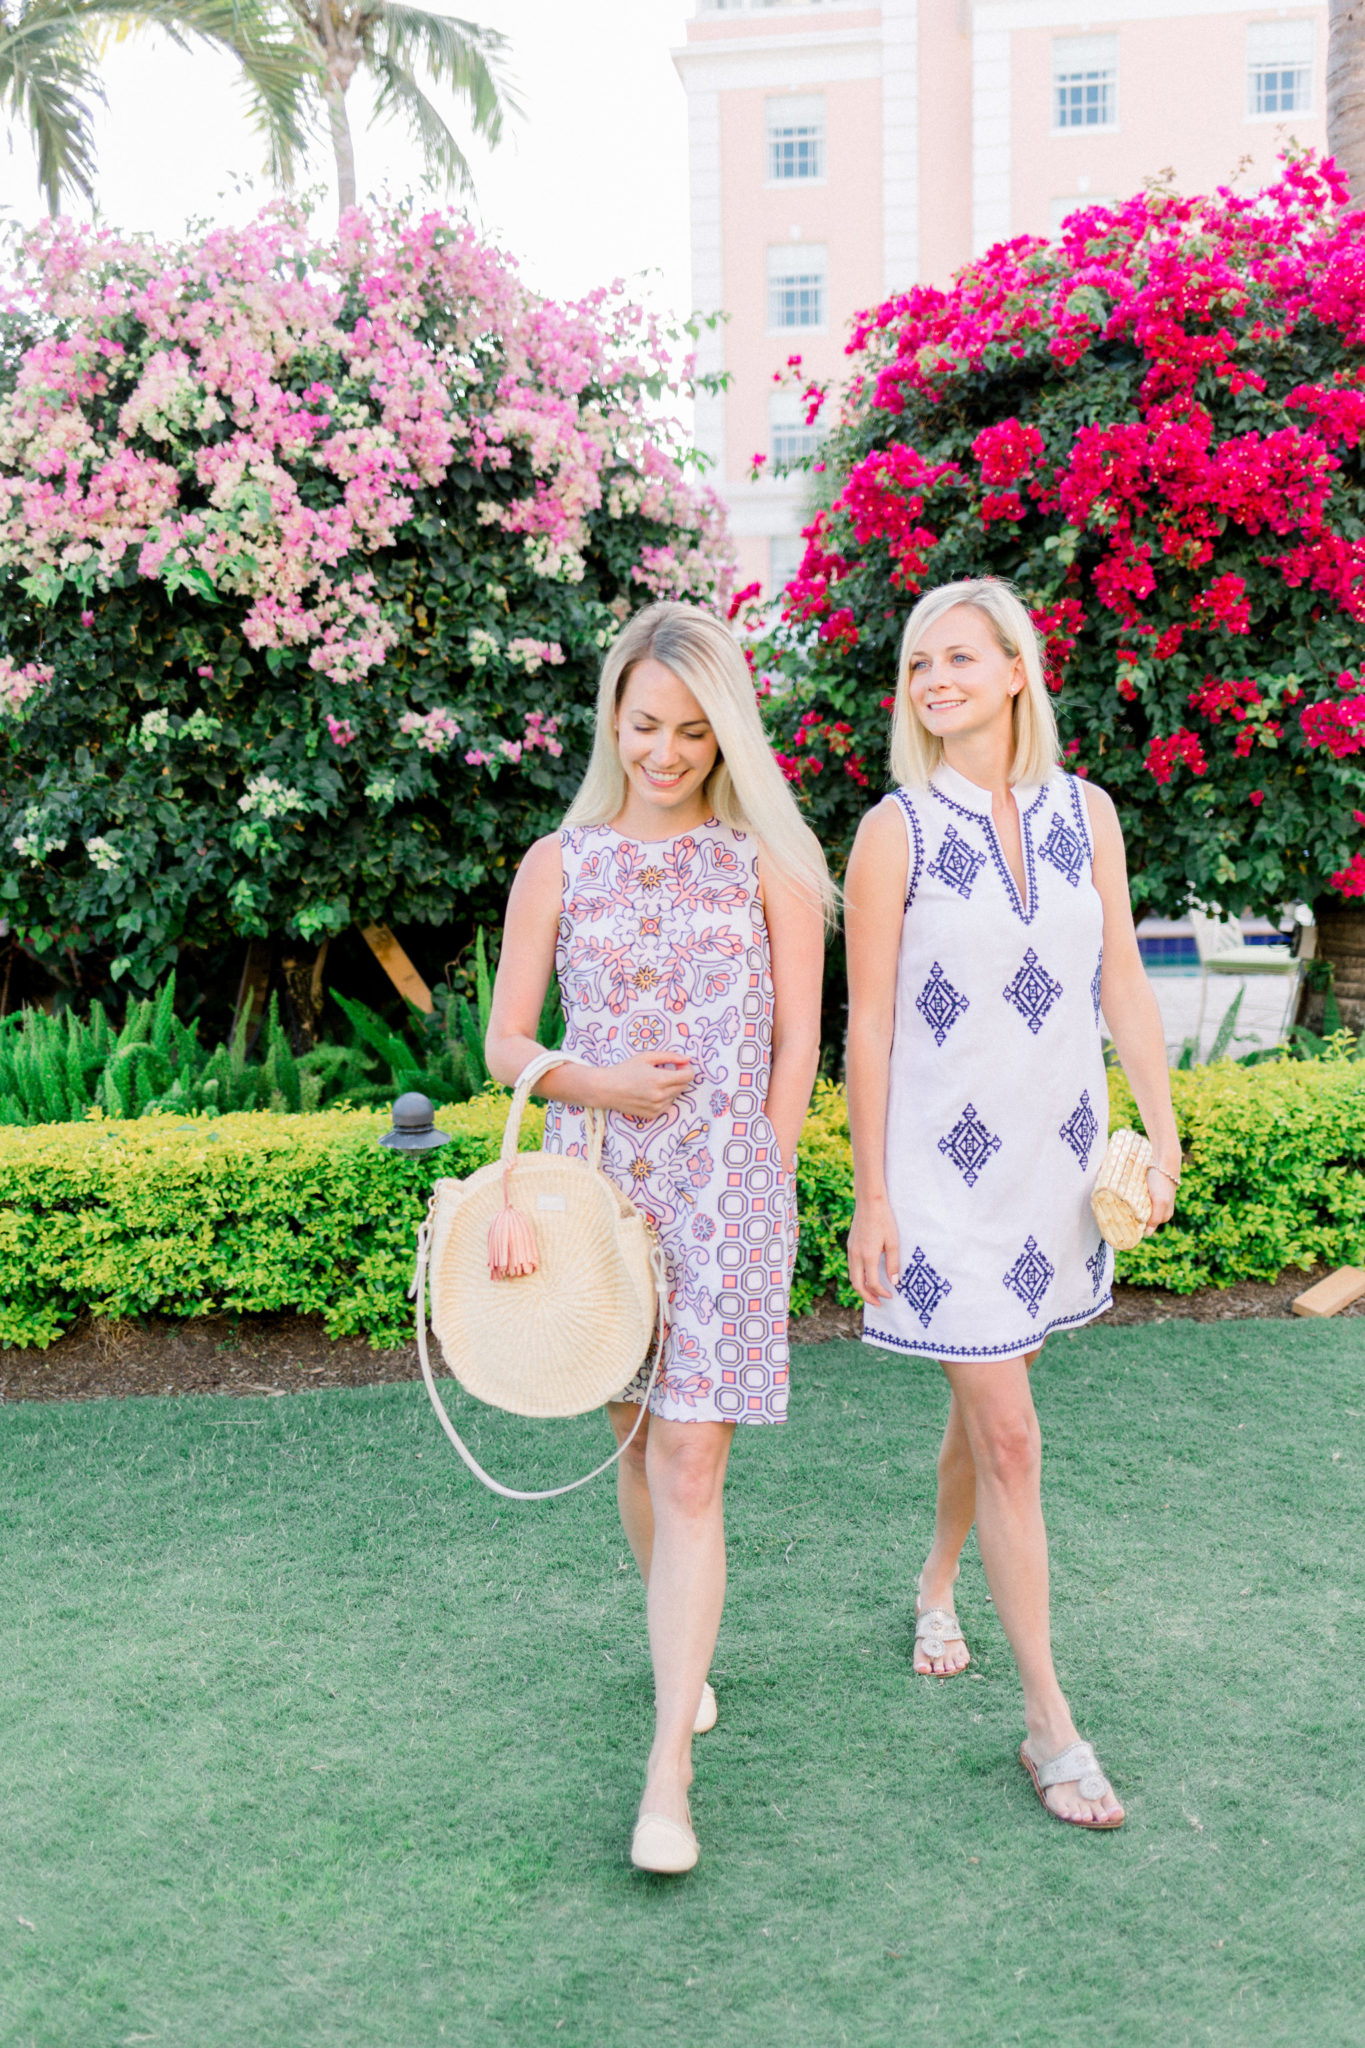 The Best Vacation Ready Purses for Summer | Rhyme & Reason